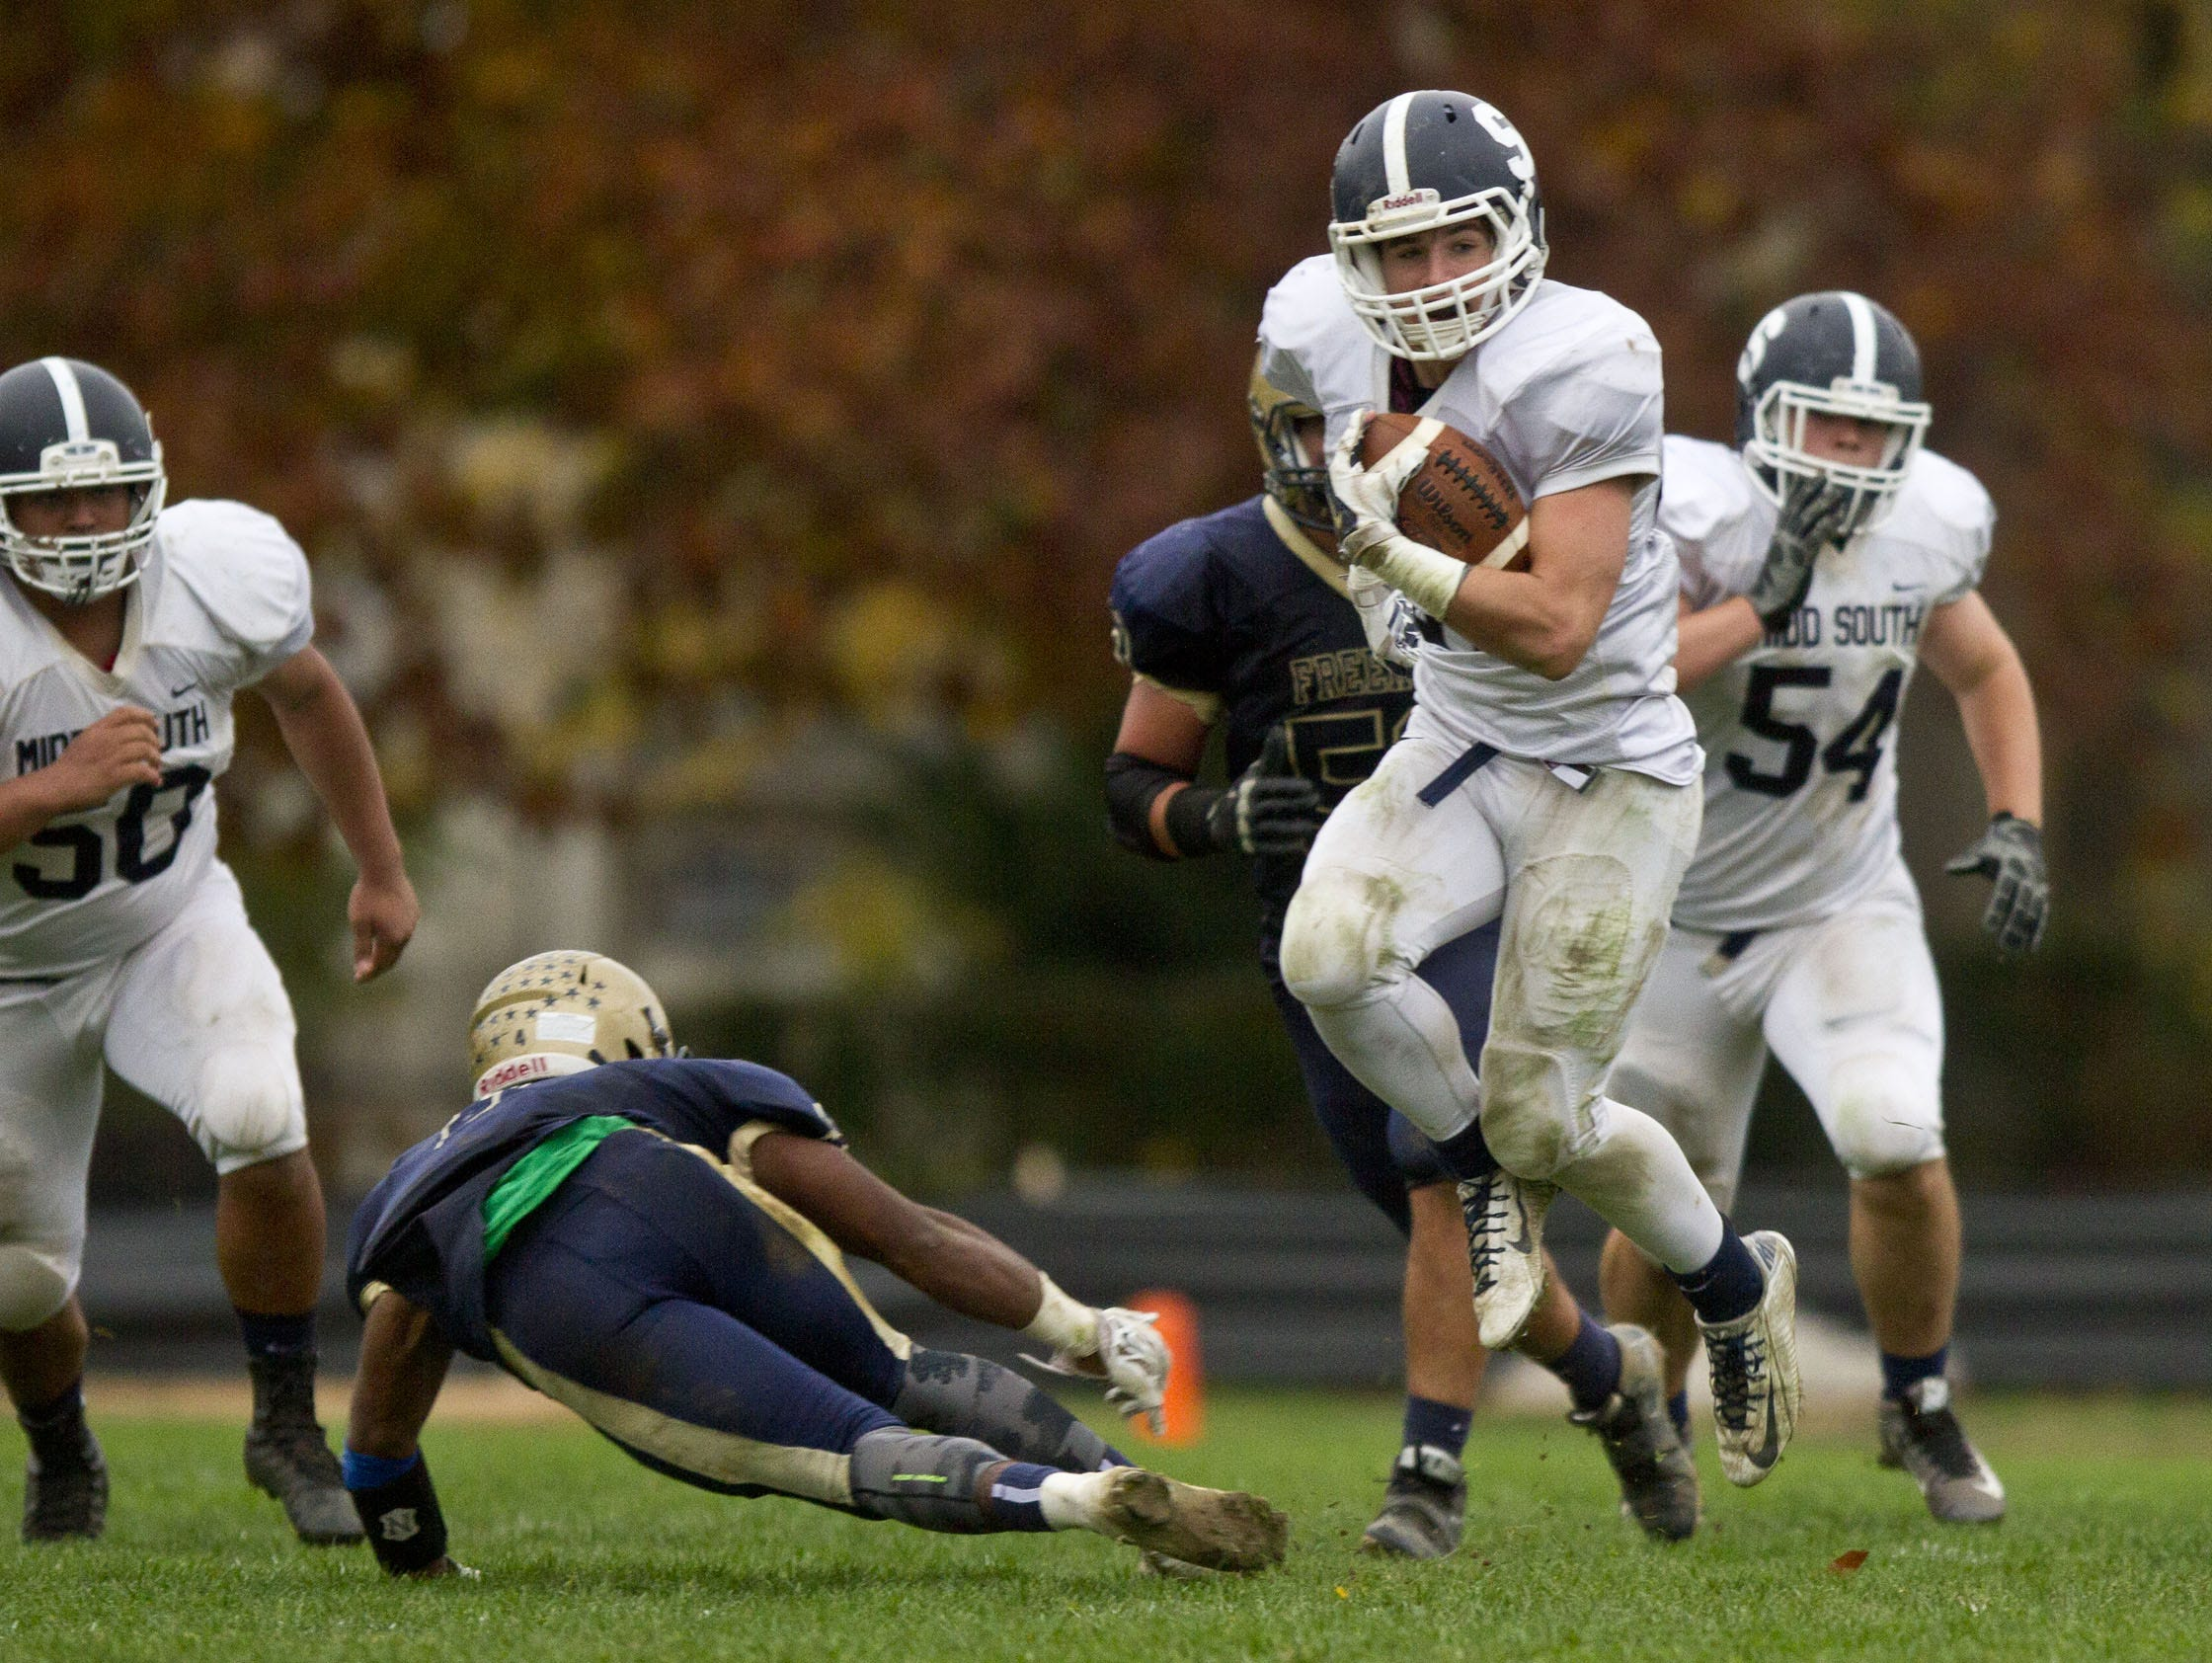 Middletown South and senior running back Cole Rogers will be meeting Middletown North Friday night in a NJSIAA North II Group IV semifinal.